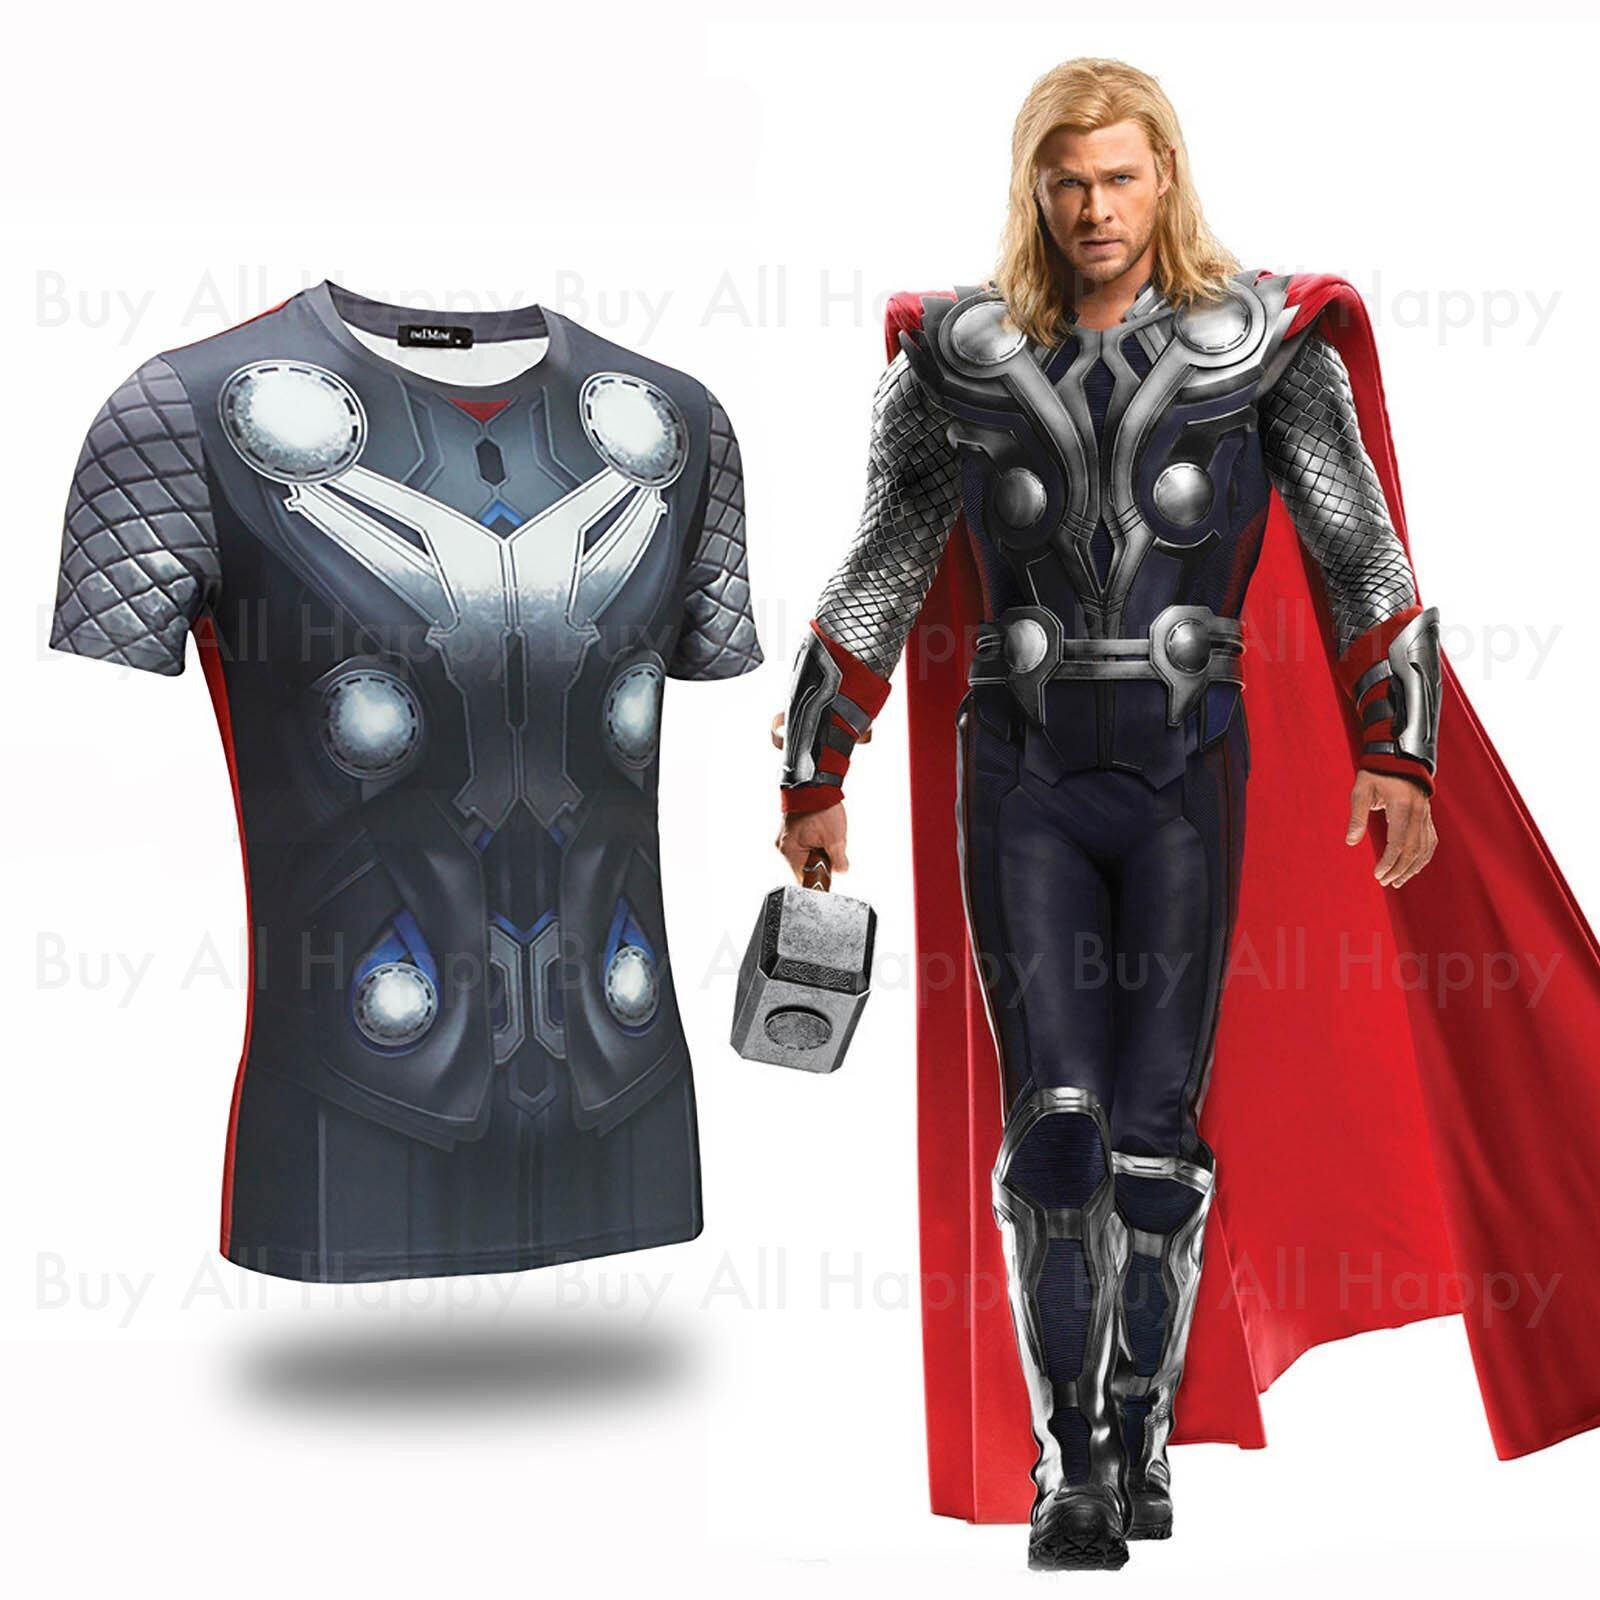 New Avengers Age of Ultron Thor Odinson Printed Short Sleeves Costume T T-shirt